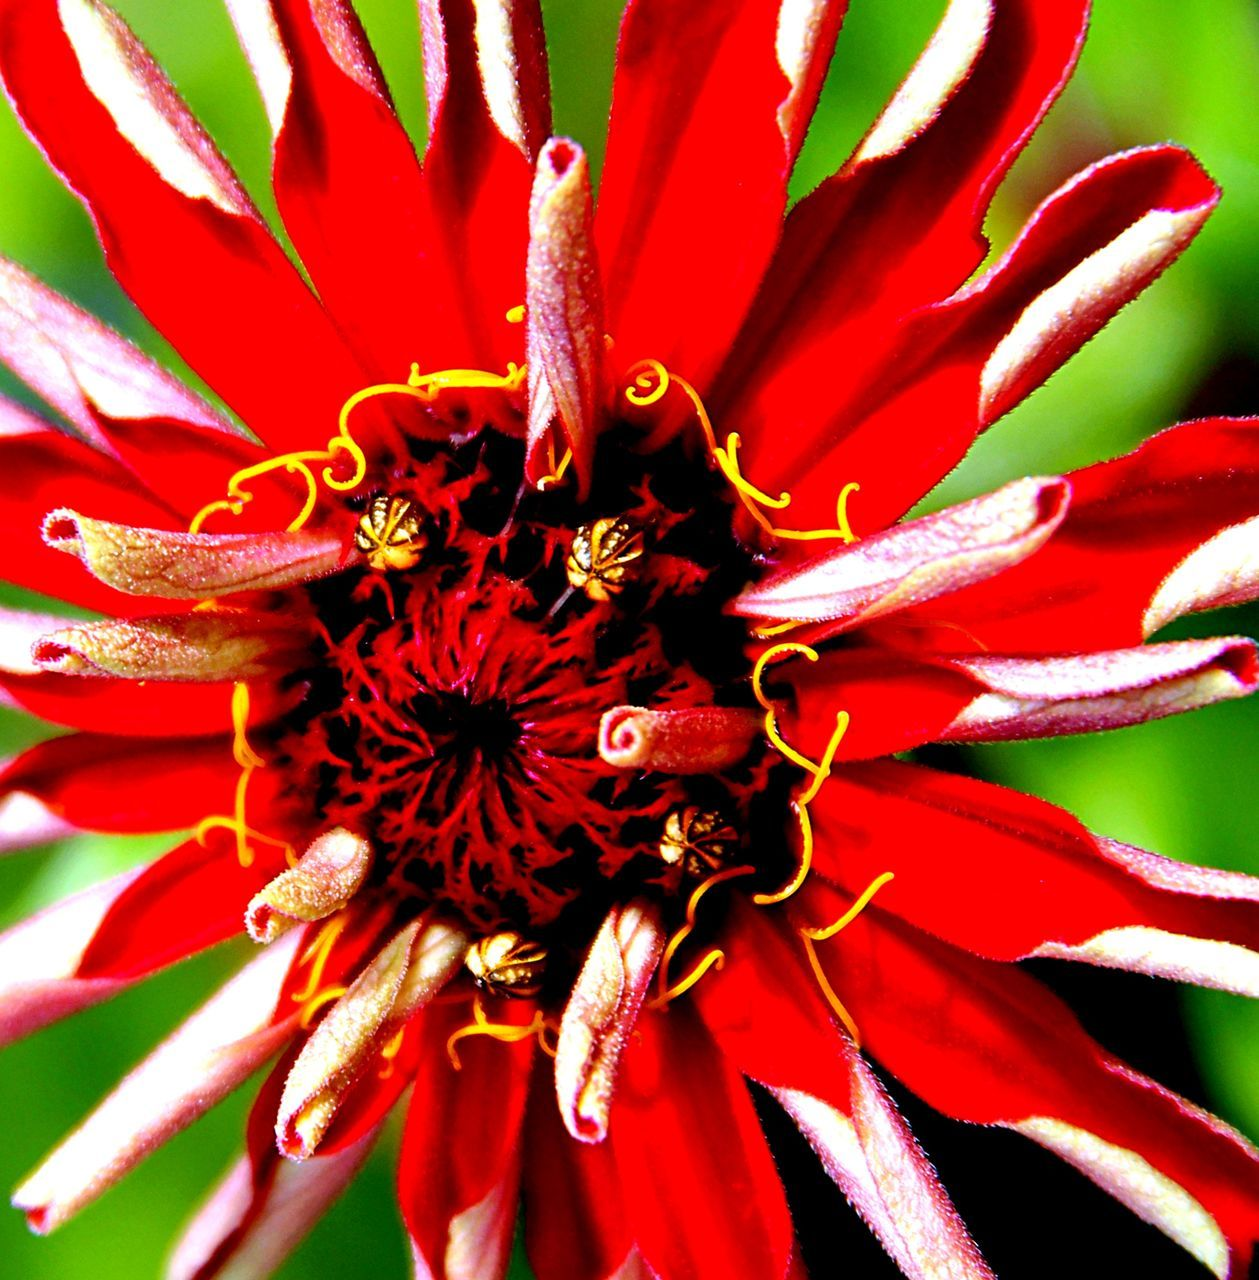 flower, petal, growth, red, flower head, beauty in nature, fragility, freshness, nature, pollen, close-up, no people, plant, outdoors, stamen, day, blooming, animal themes